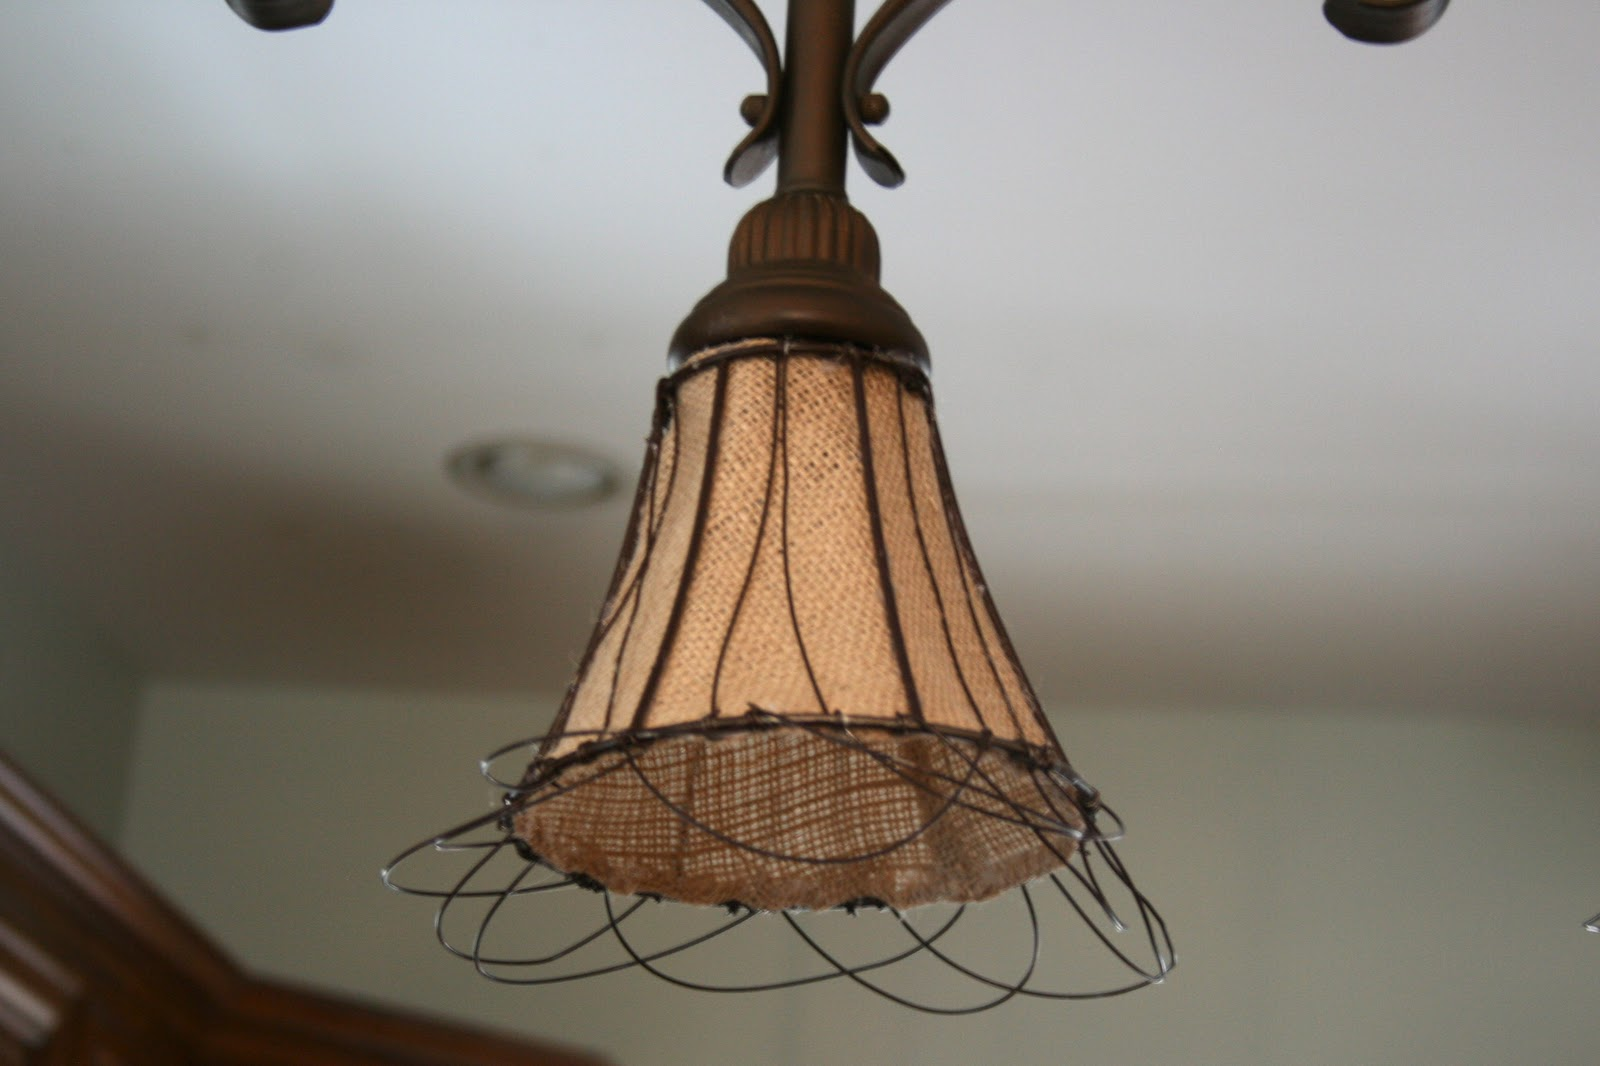 How To Make Burlap Light Shades Wire A Ceiling Rose In Simple Steps Craftomaniac Im Really Liking The Look And Loving That With Some Fabric Creativity You Can Create New Lighting For Yourself Too